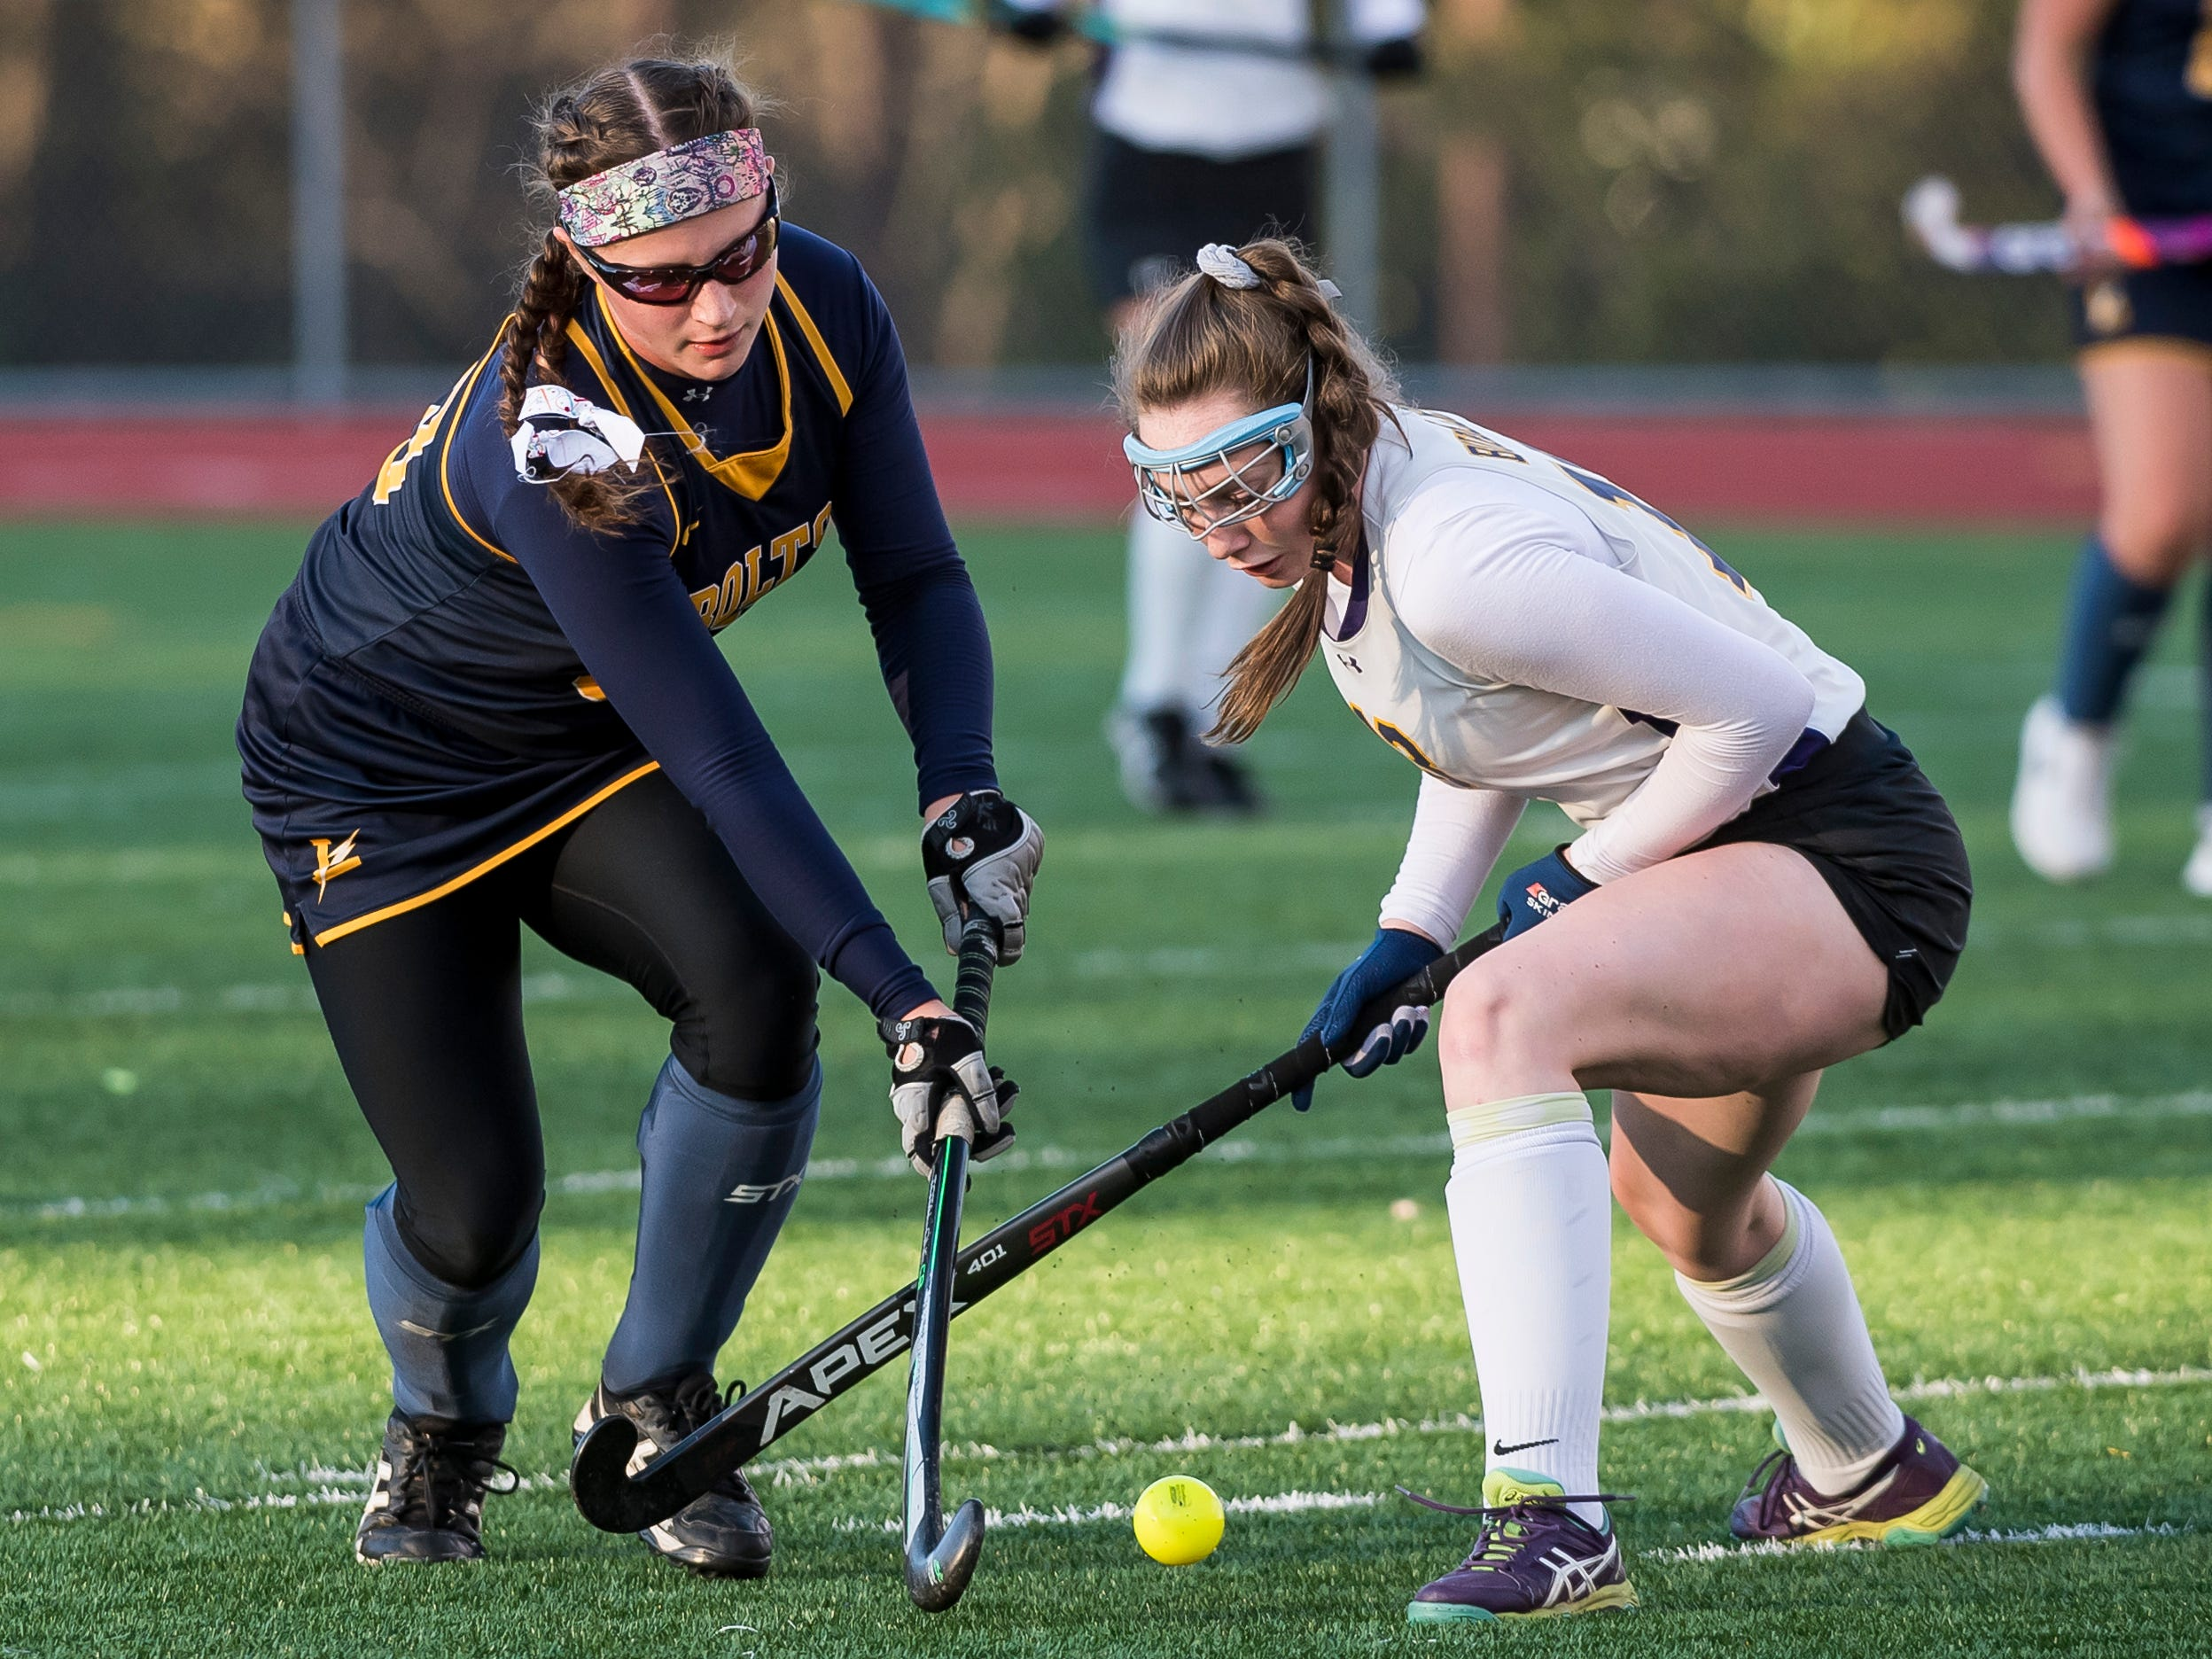 Littlestown's Regan Schroeder moves the ball down the field against Boiling Springs during a PIAA District III first round game at Bermudian Springs High School on Wednesday, October 24, 2018. The Bolts fell 2-0.